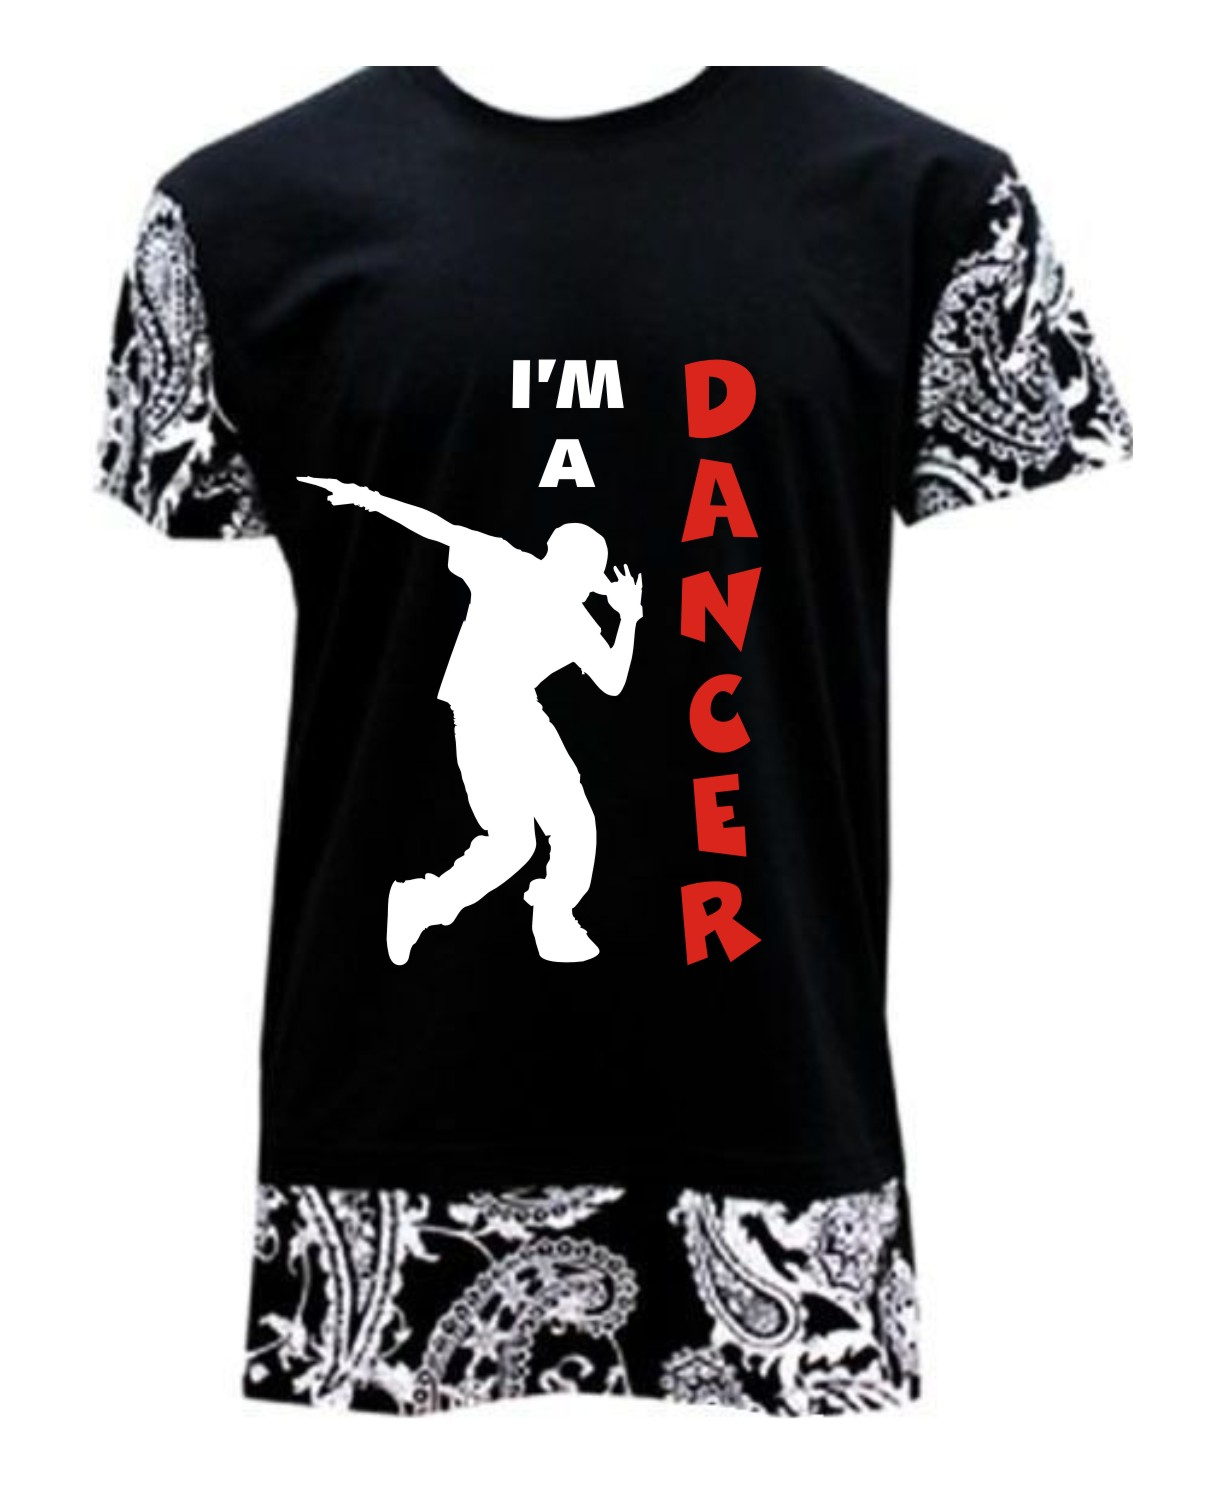 Design t shirt youtube - T Shirt Design By Nitin Kumar Chadha For Youtube Dance Star Needs A Cool